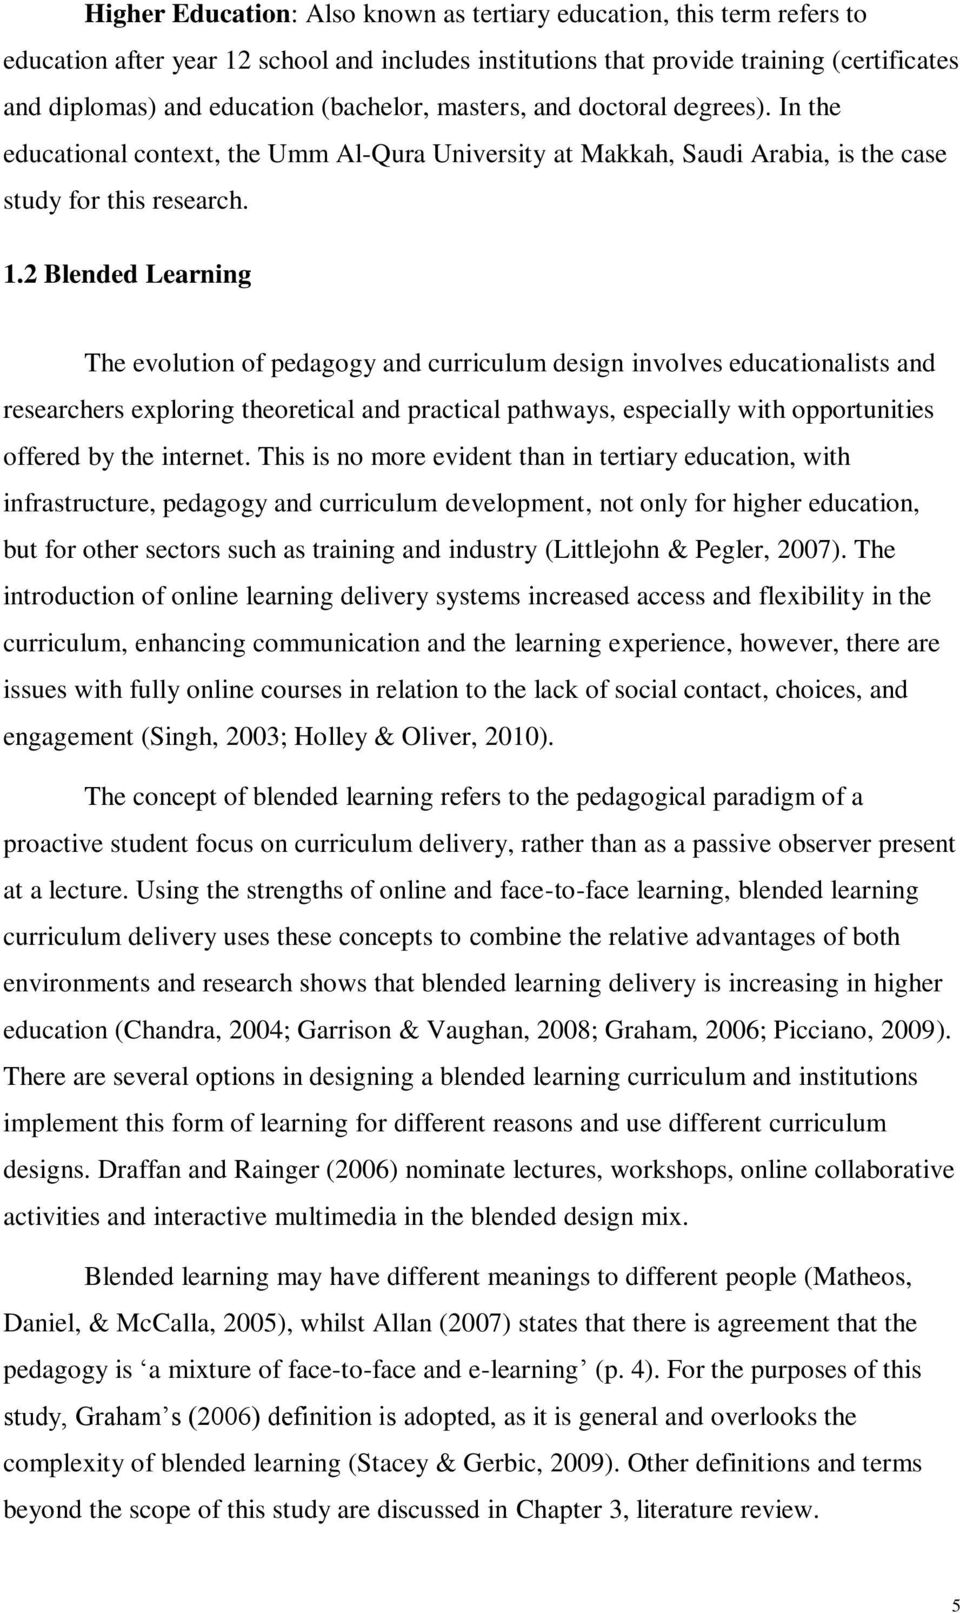 2 Blended Learning The evolution of pedagogy and curriculum design involves educationalists and researchers exploring theoretical and practical pathways, especially with opportunities offered by the